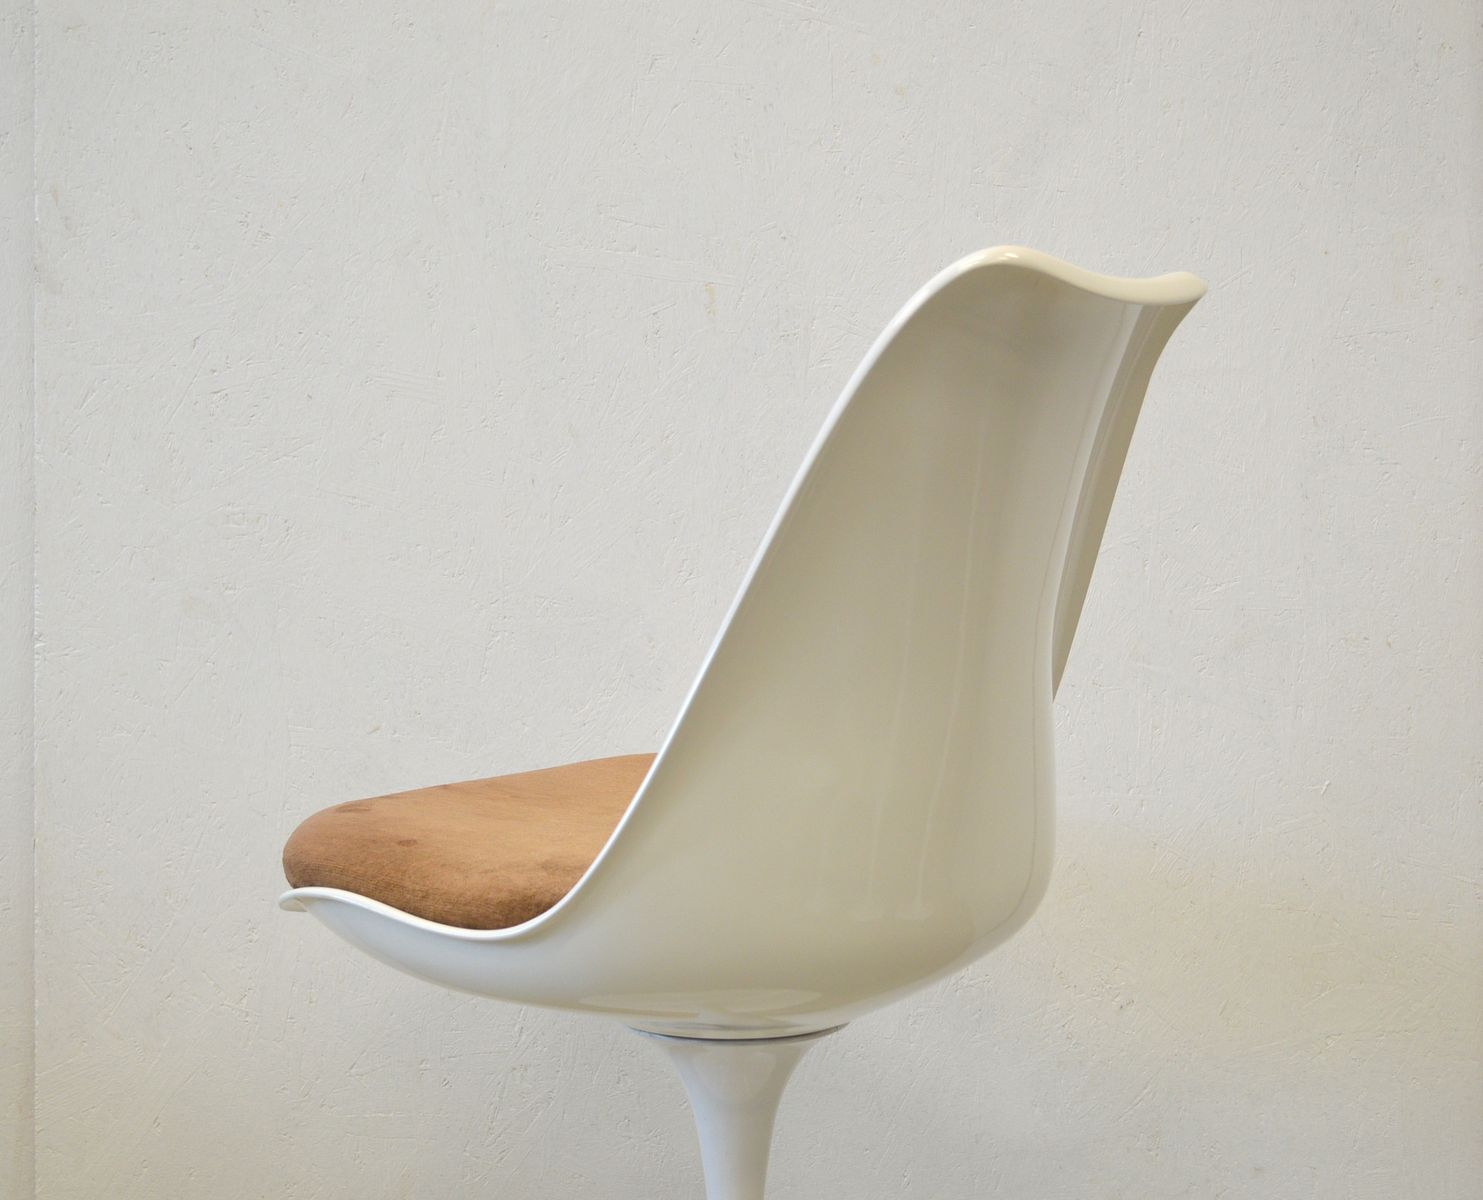 tulip table and chairs uk plush bean bag chair marble dining 6 by eero saarinen for